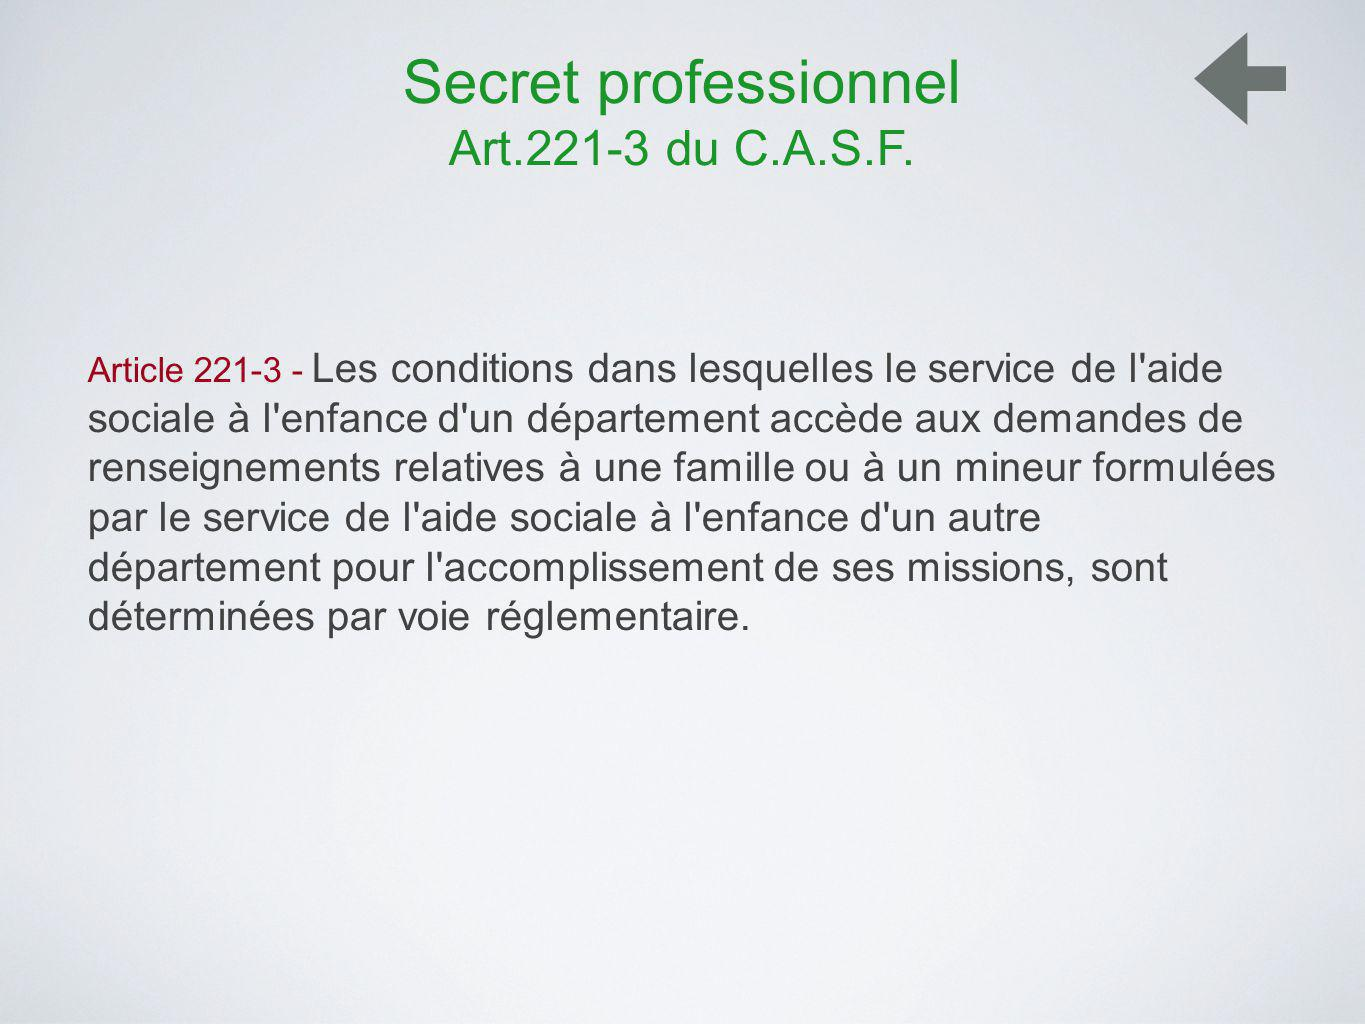 Secret professionnel Art.221-3 du C.A.S.F.